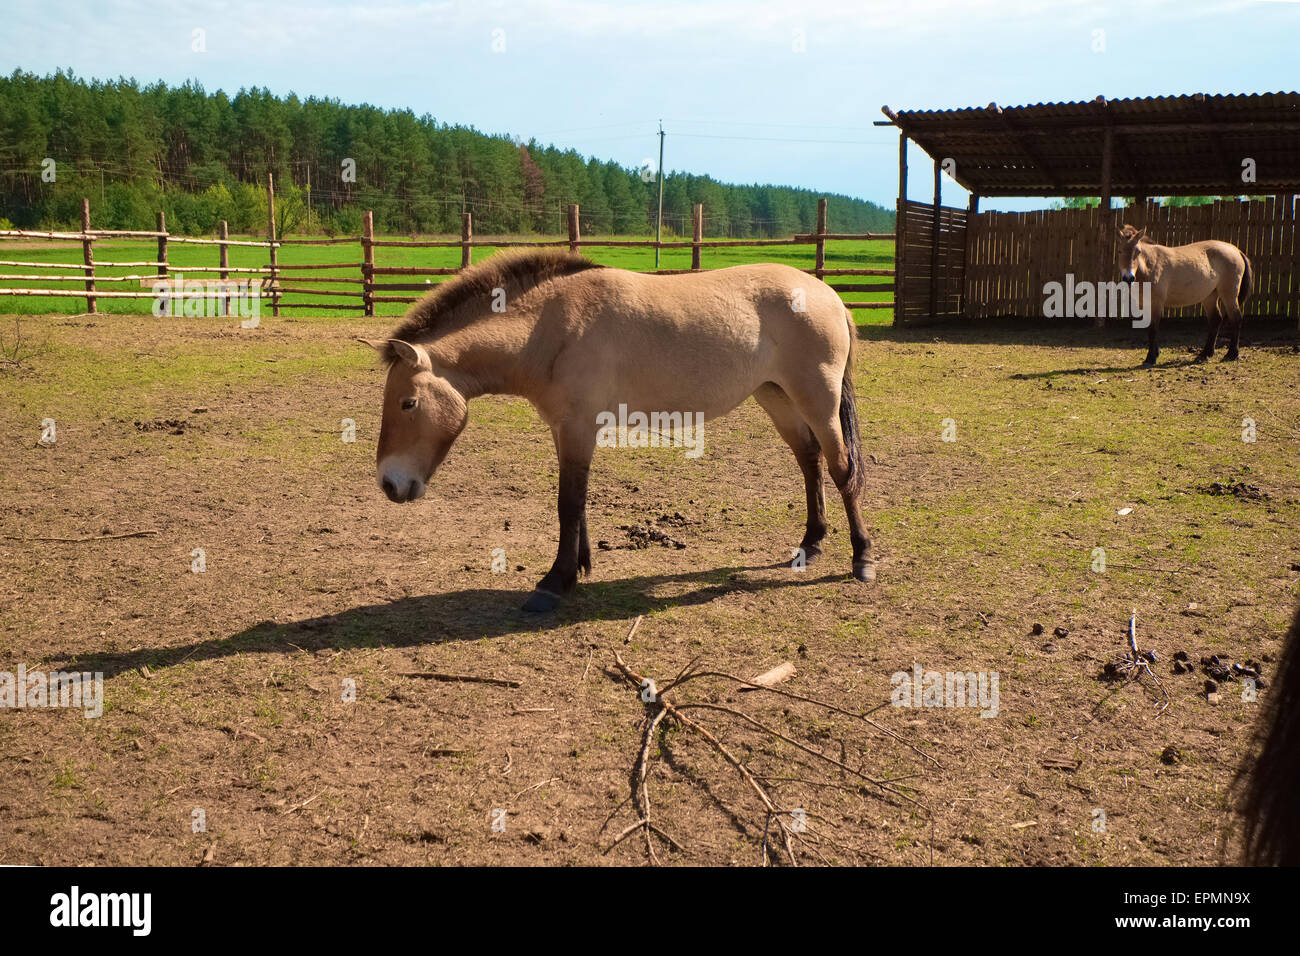 Typical horse for Chernobyl region - Stock Image